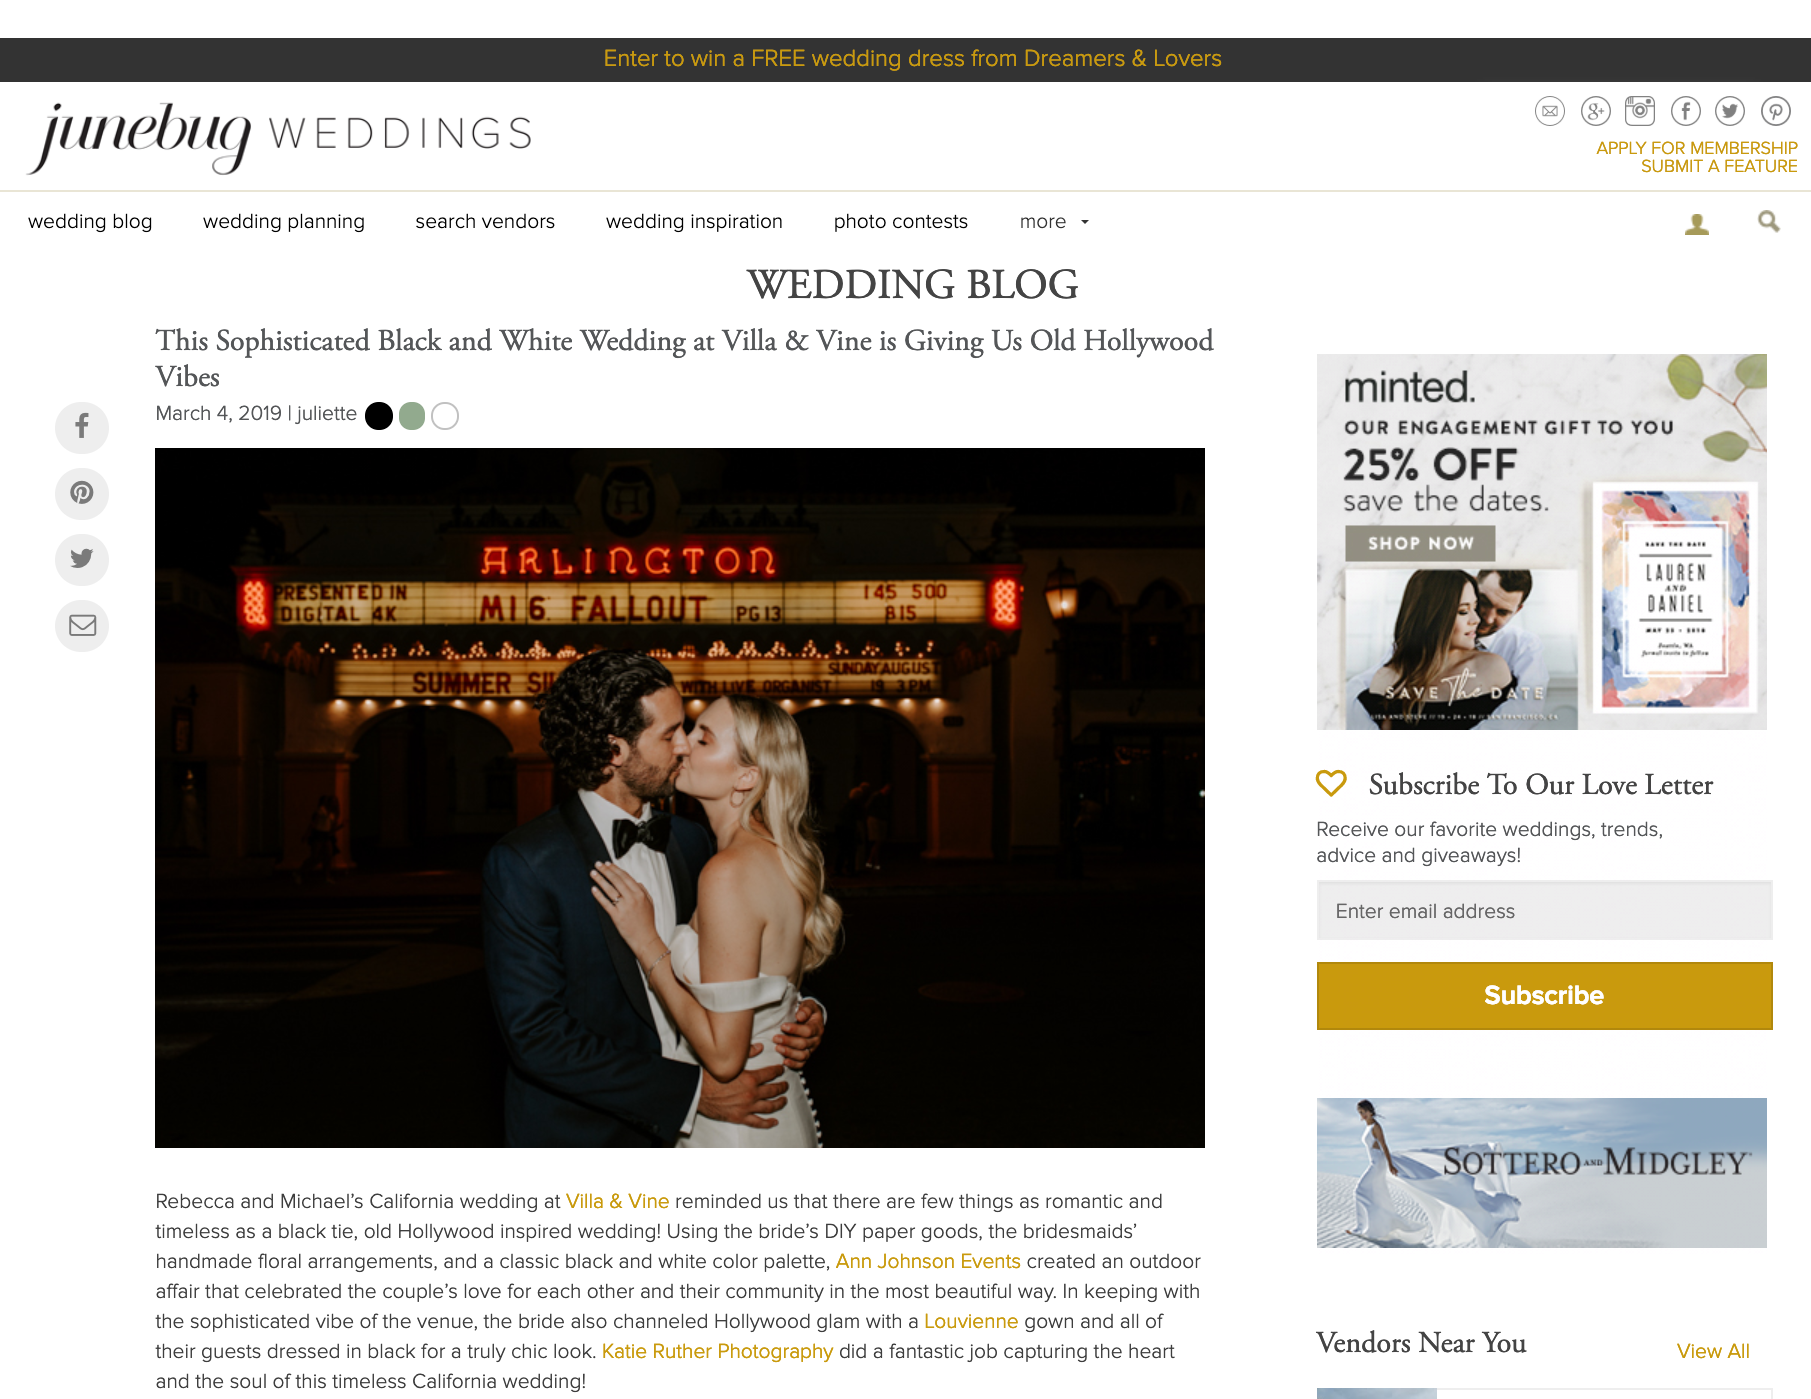 FireShot Capture 005 - This Sophisticated Black and White Wedding at Villa & Vine is Giving _ - junebugweddings.com.png